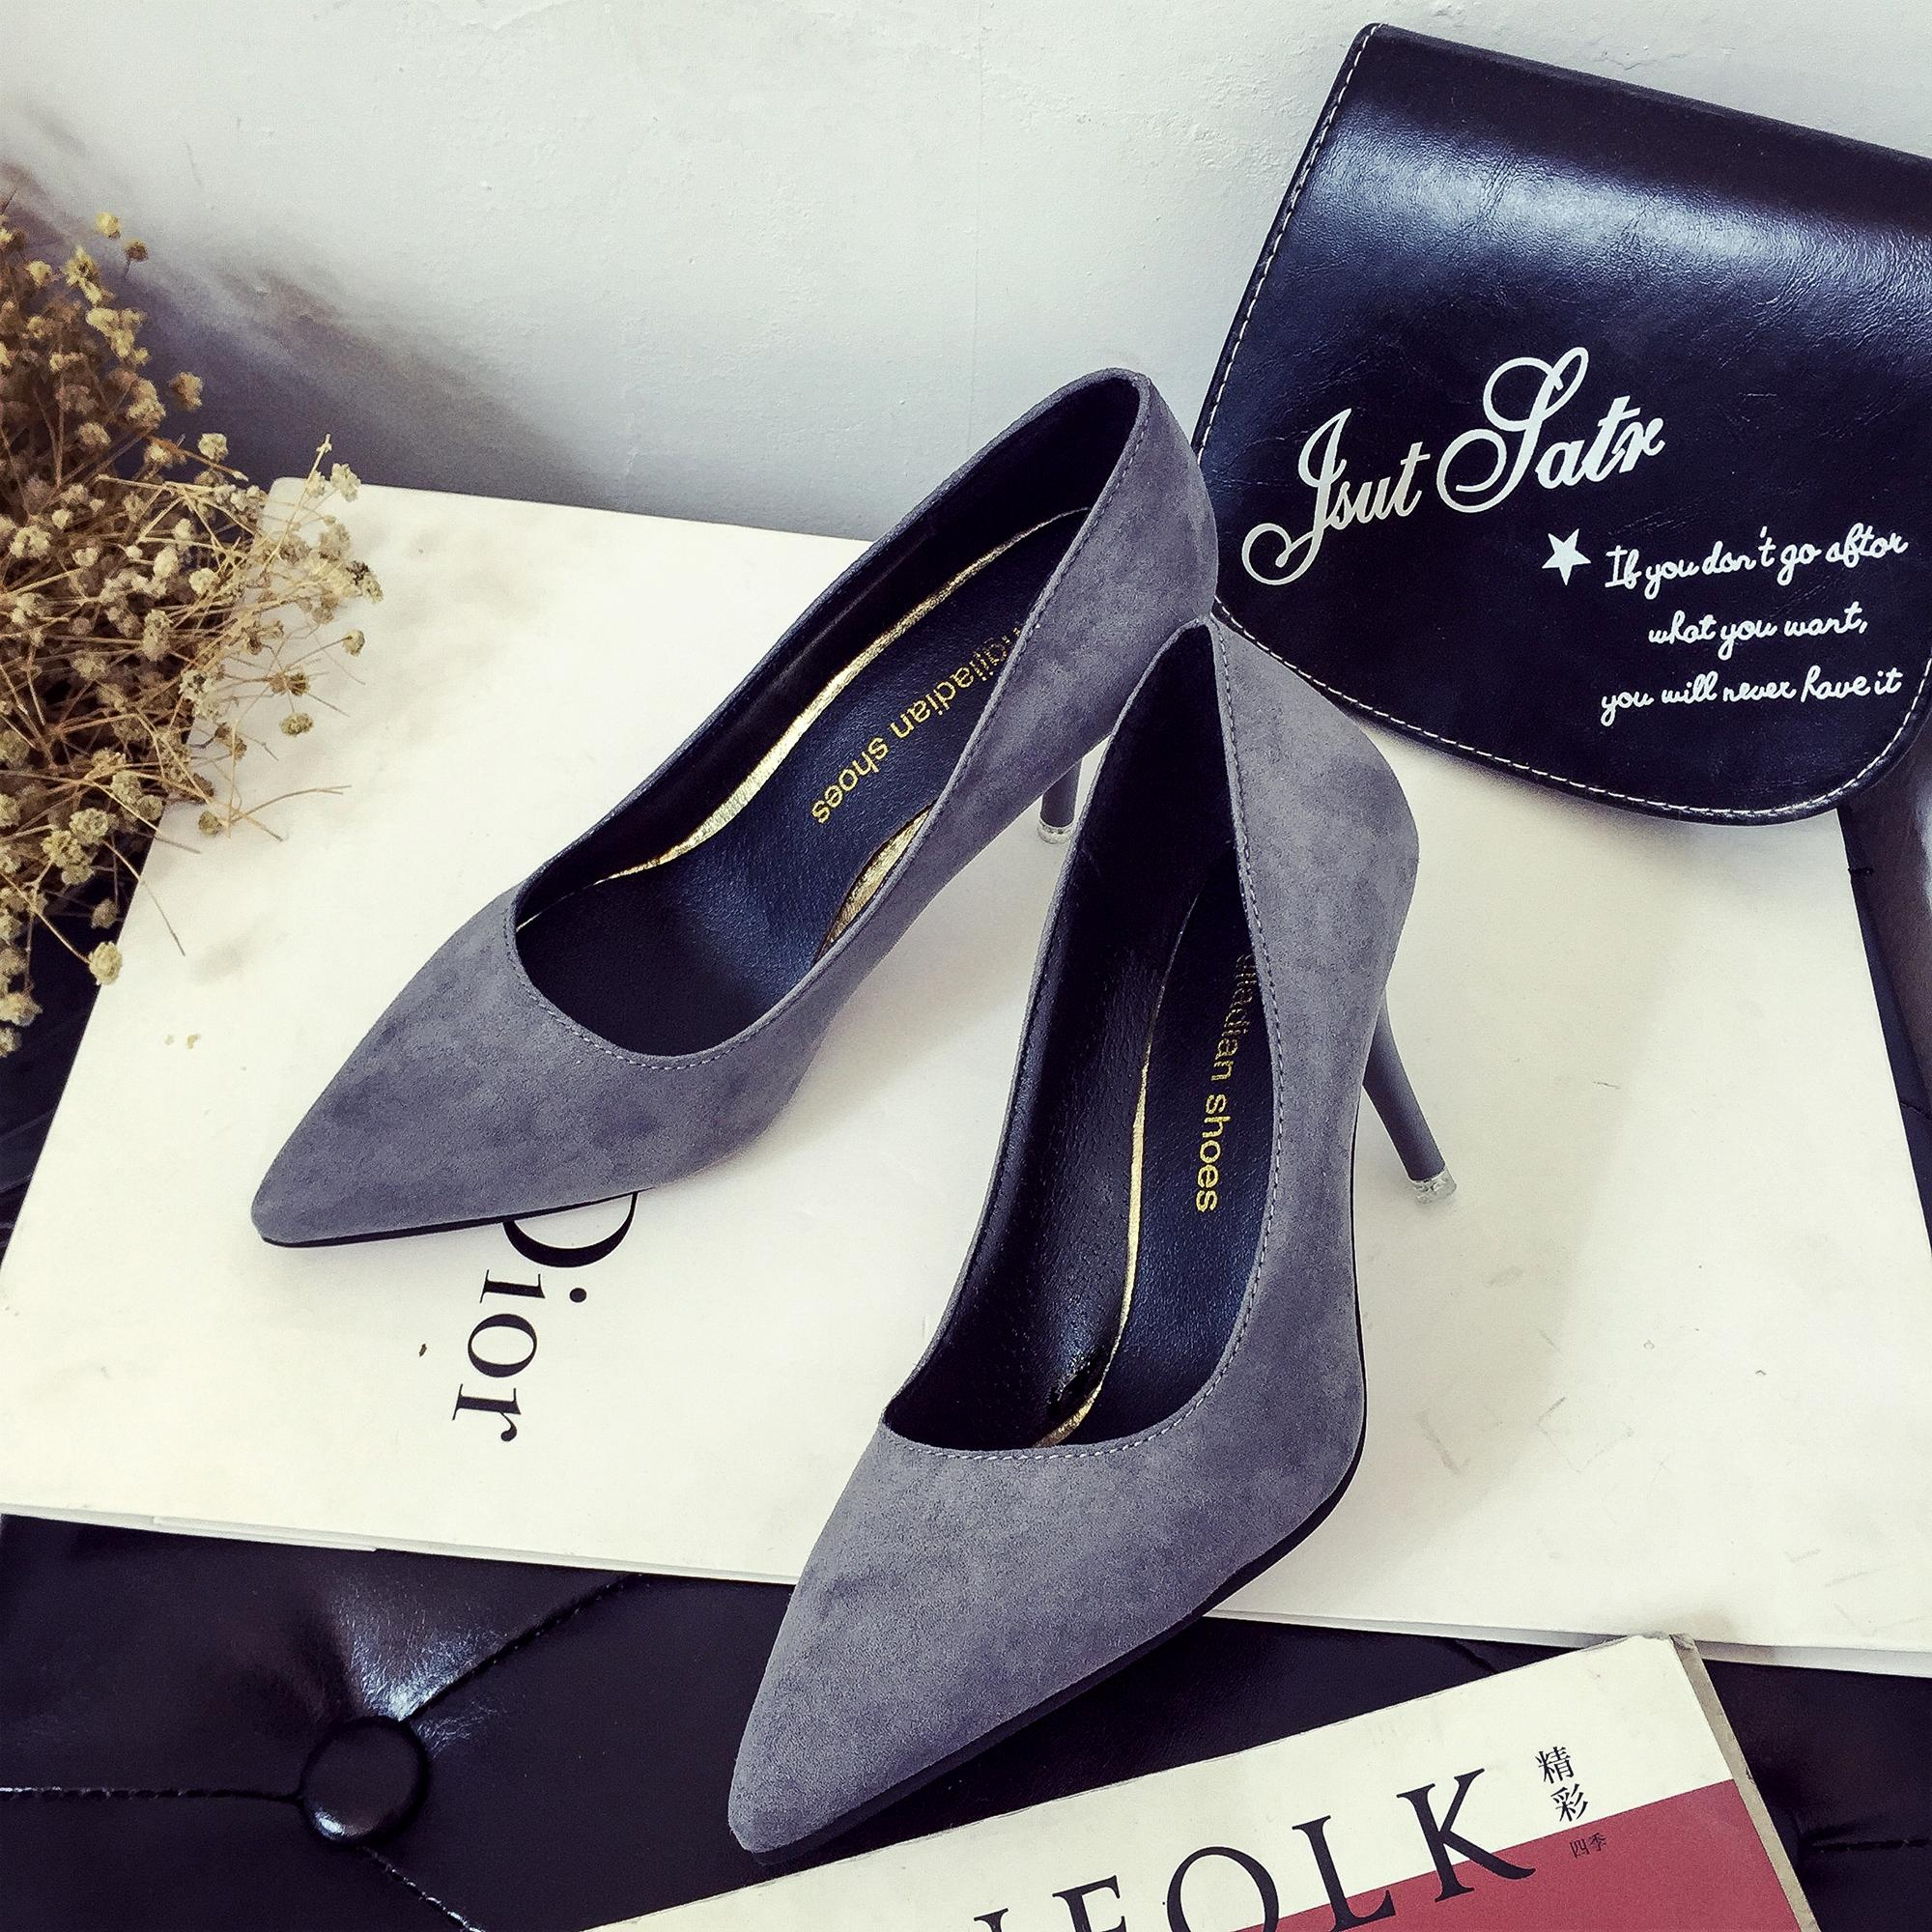 Pointed Shoes Female Spring And Autumn New Style Sexy Thin Heeled High Heel Shoes Suede Simple Shallow Mouth Wedding Shoes Professional Semi-High Heeled Womens Shoes By Taobao Collection.